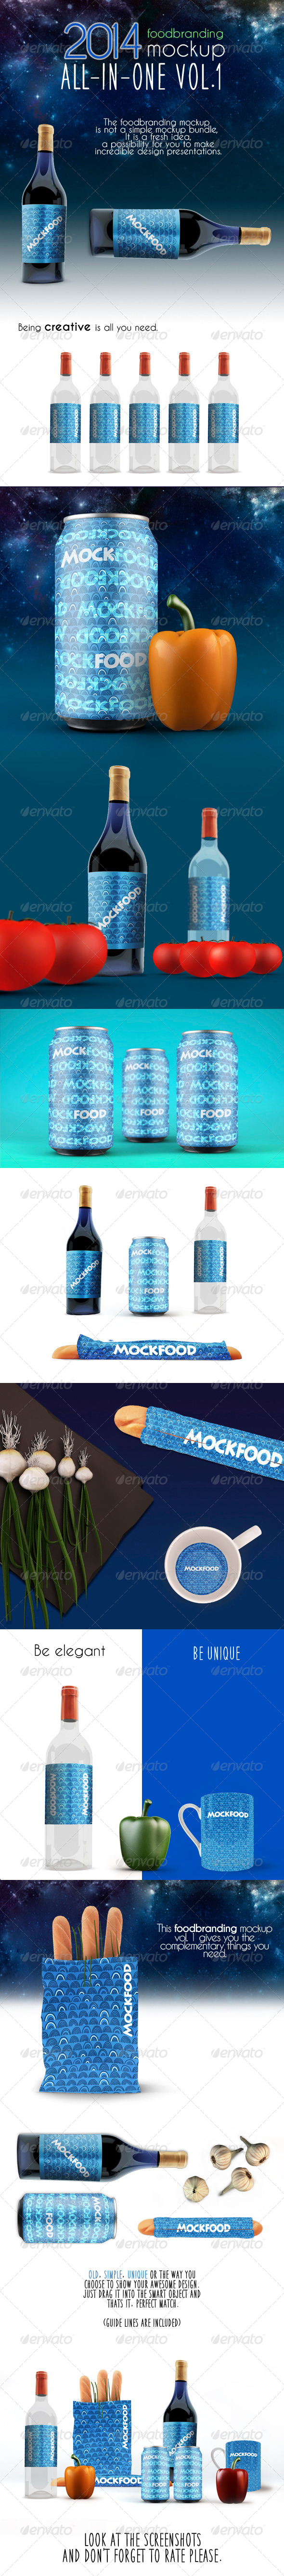 GraphicRiver Food Branding MockUp Vol 1 7724200